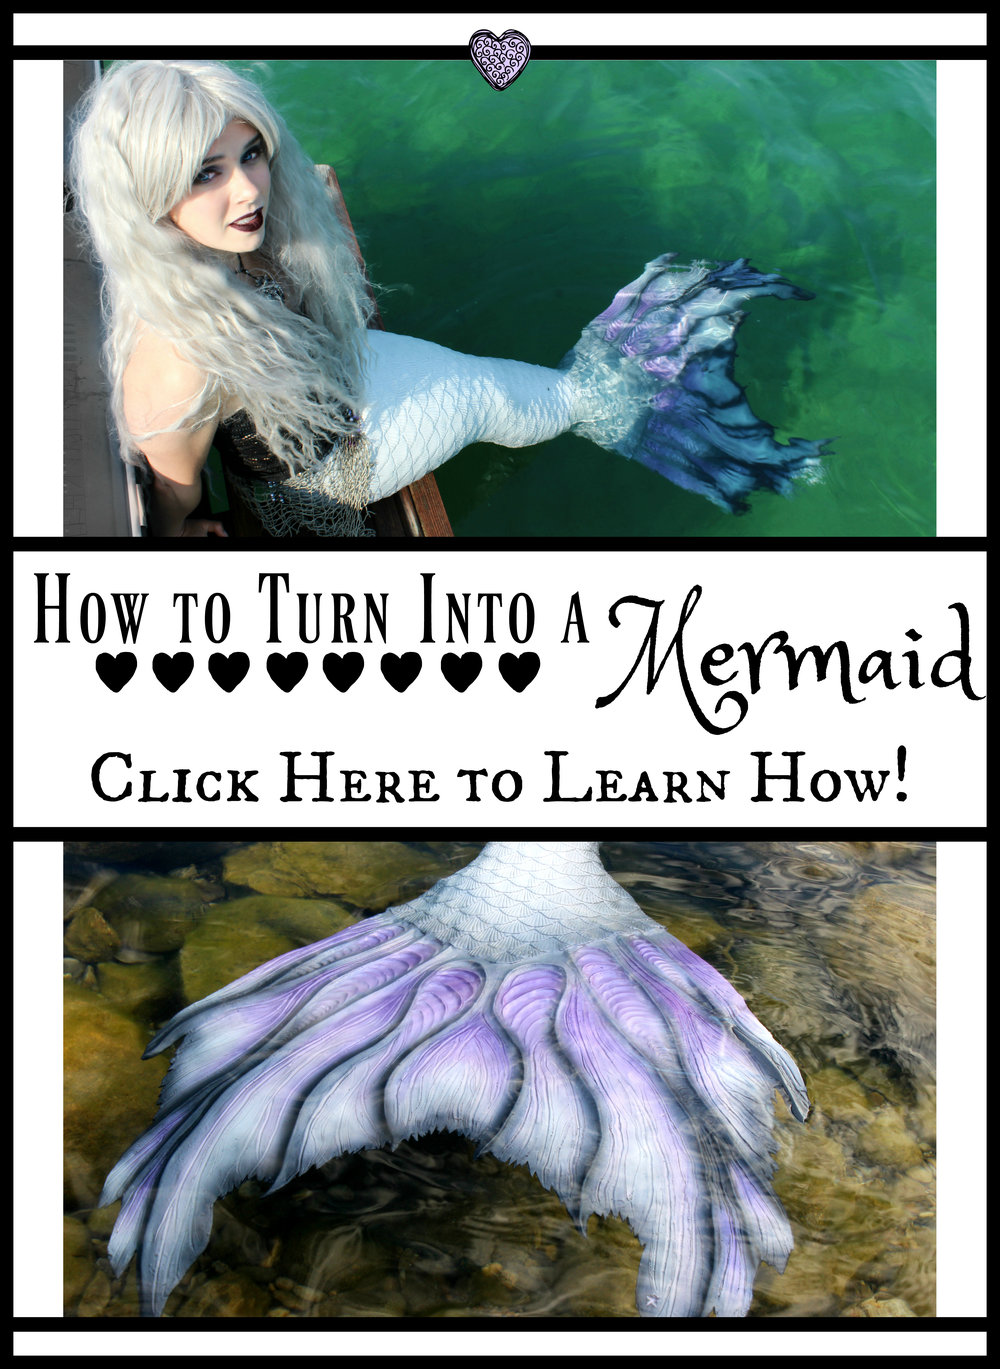 How To Turn In A Mermaid Without Magic Spell Do You Become